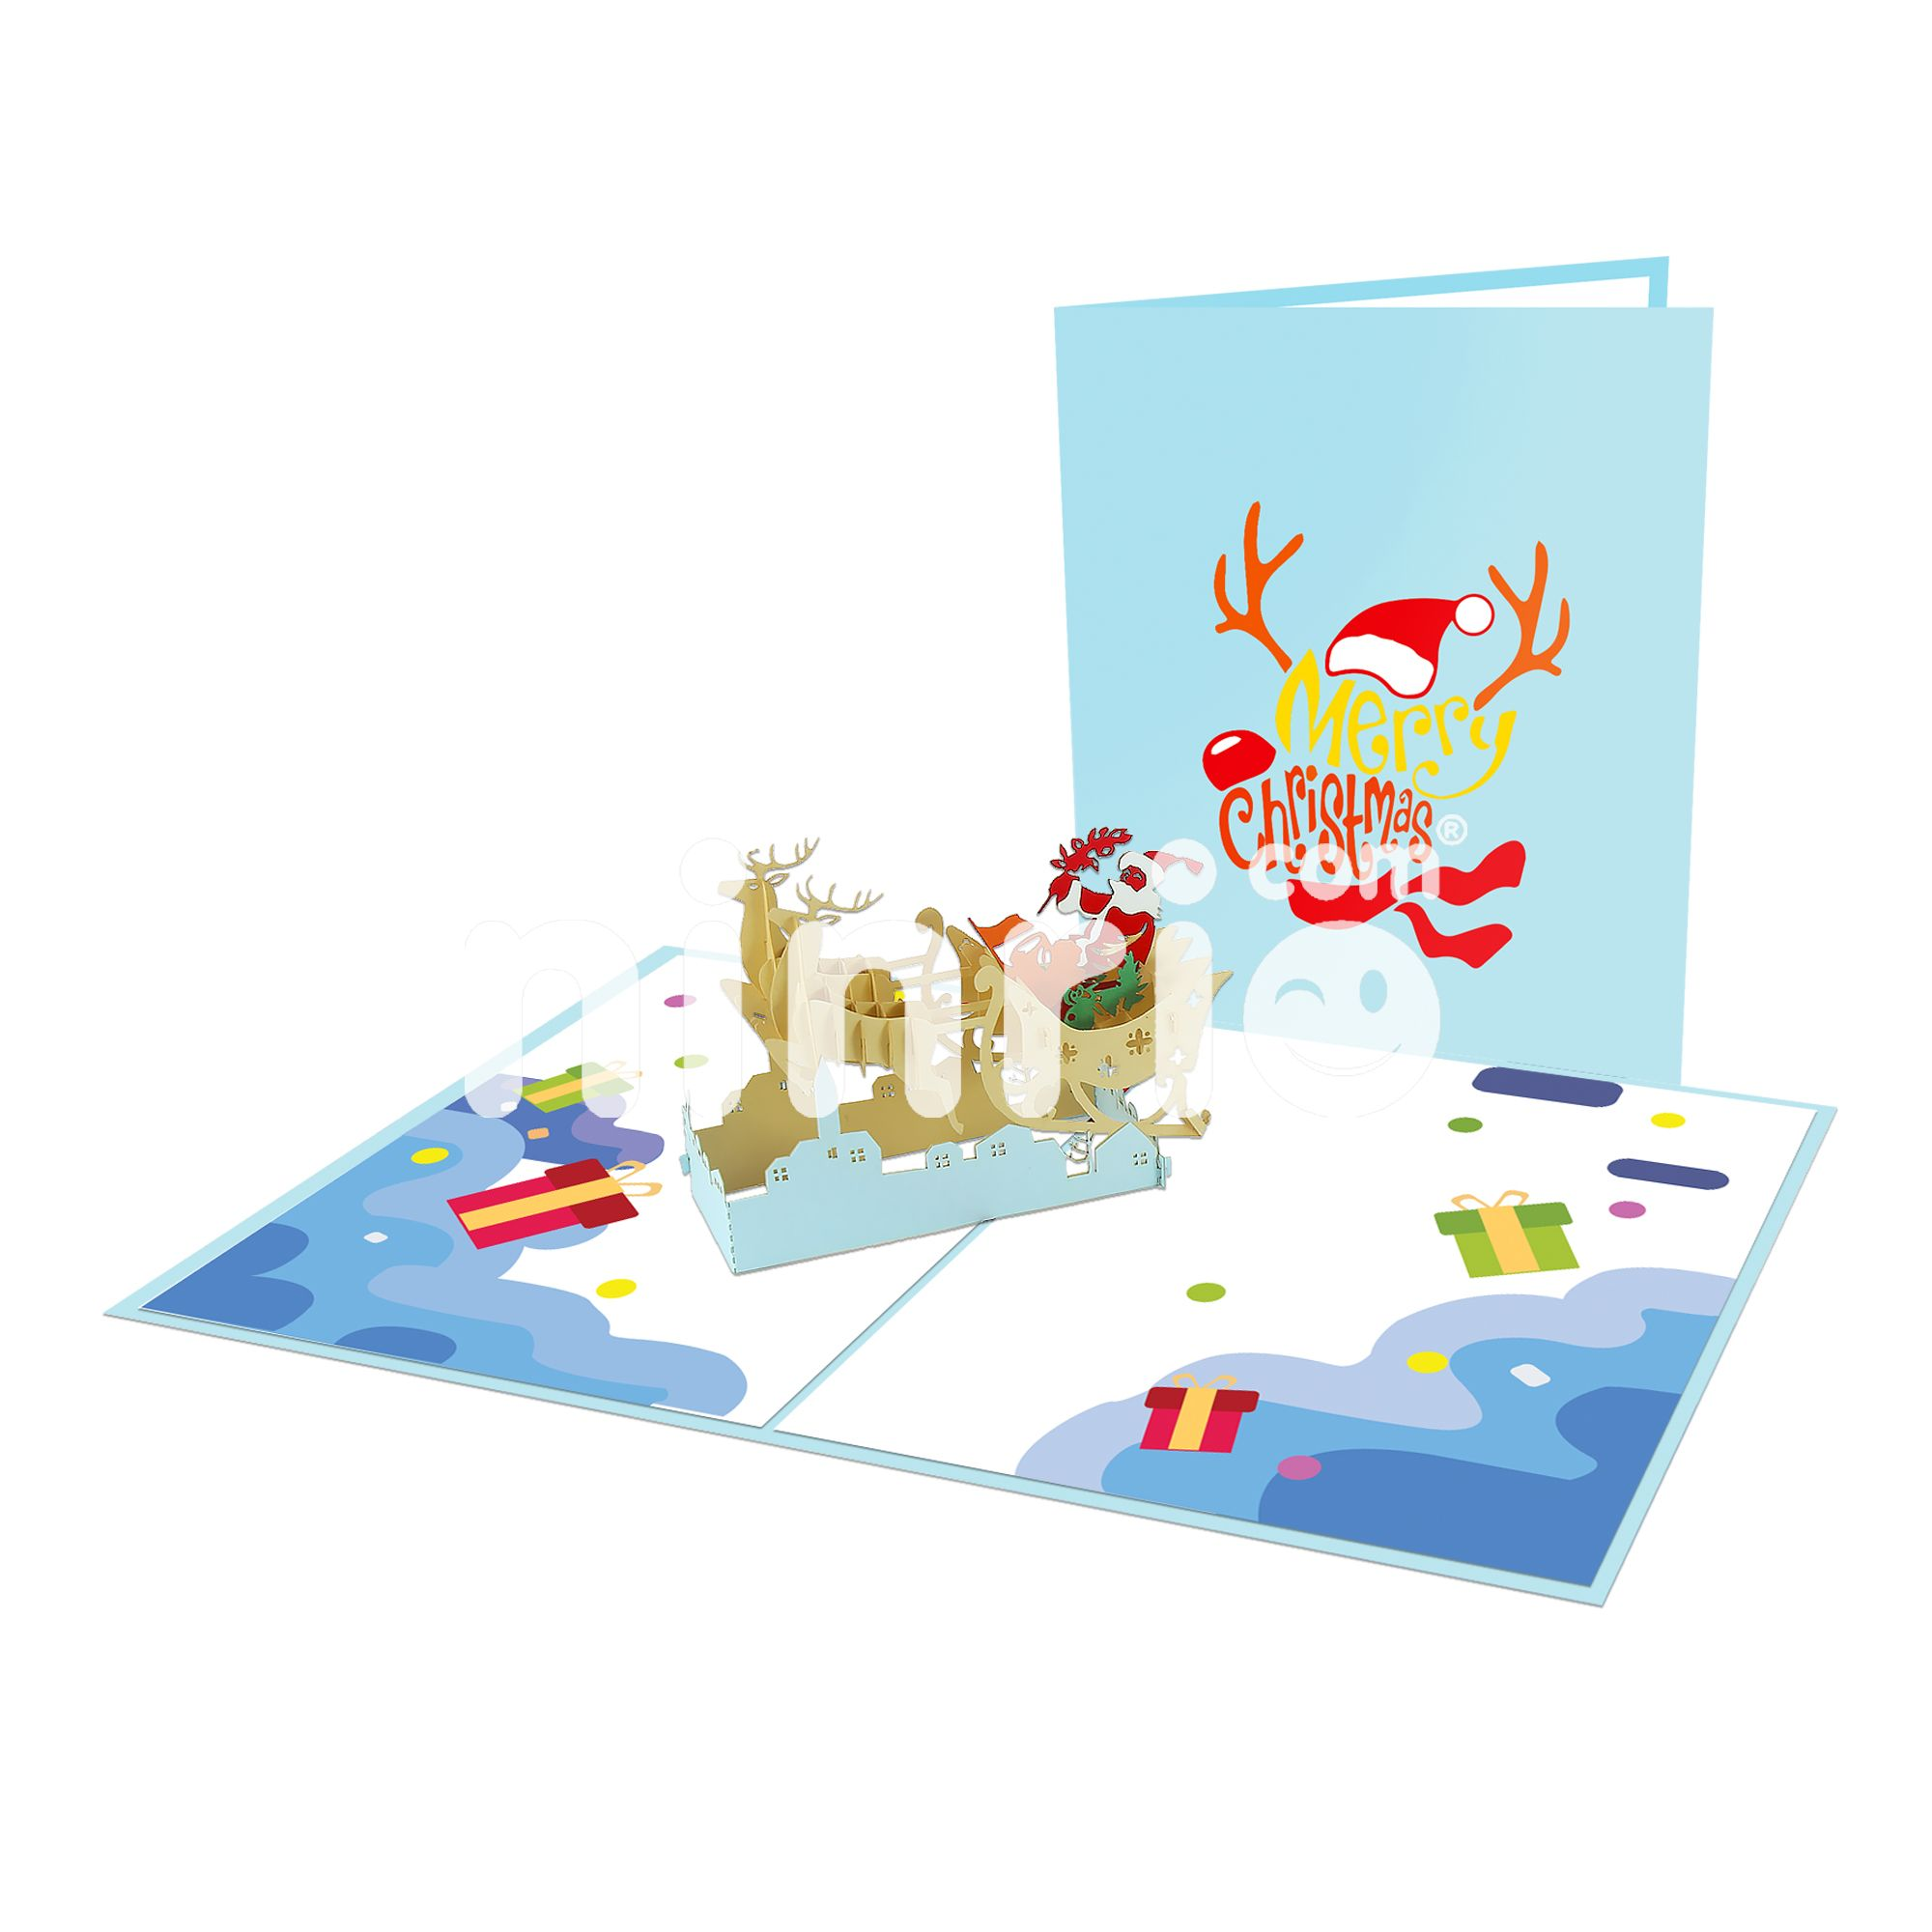 3D Pop Up 17 Temporada Gift Card Cartão do Aniversário Do Natal de Papai Noel